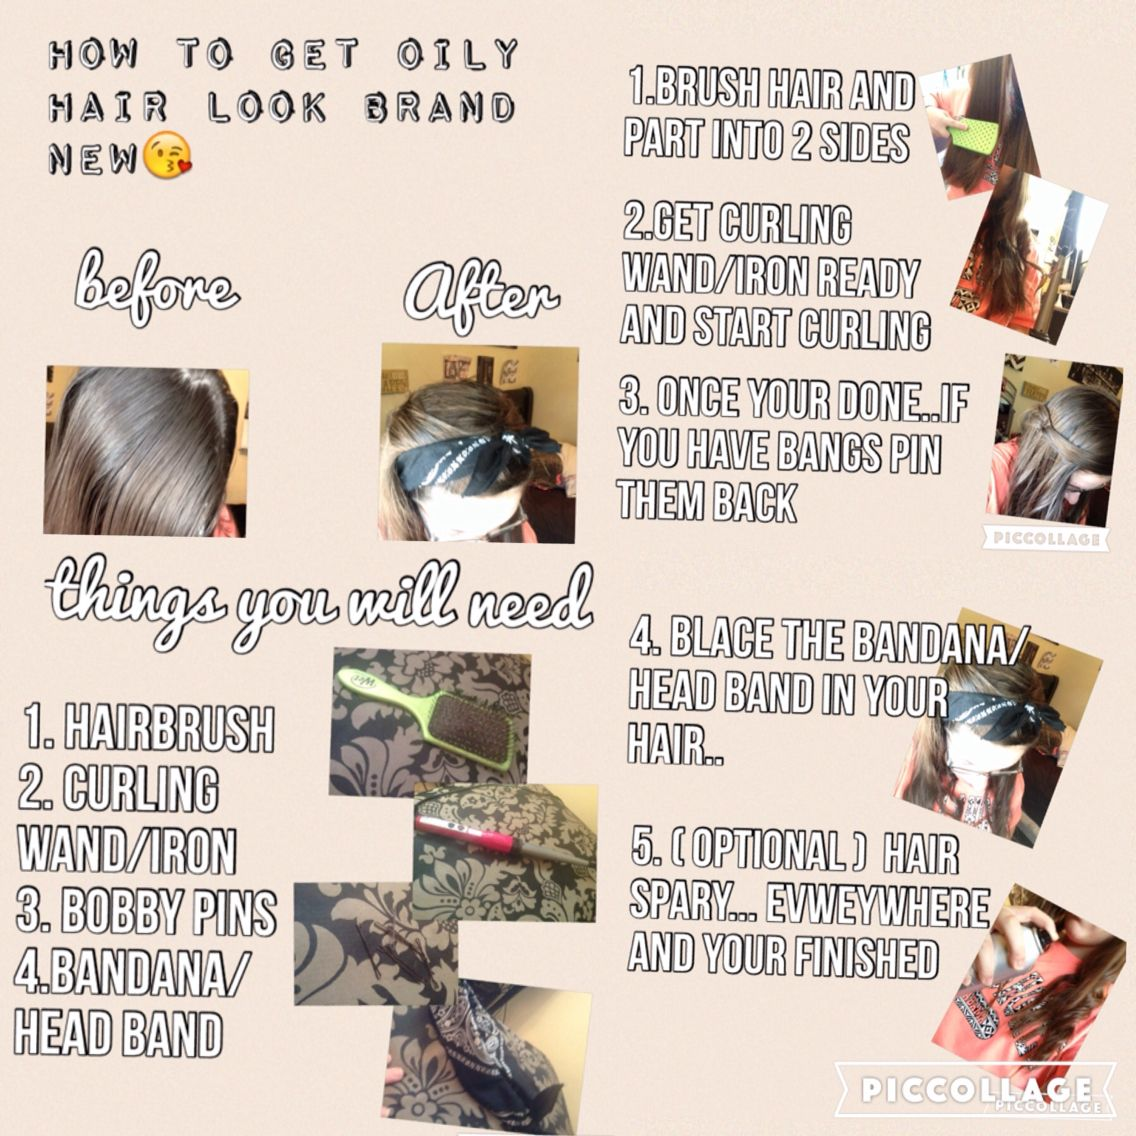 this is a cool trick that will make your hair look like you washed it the day before... ❤️❤️